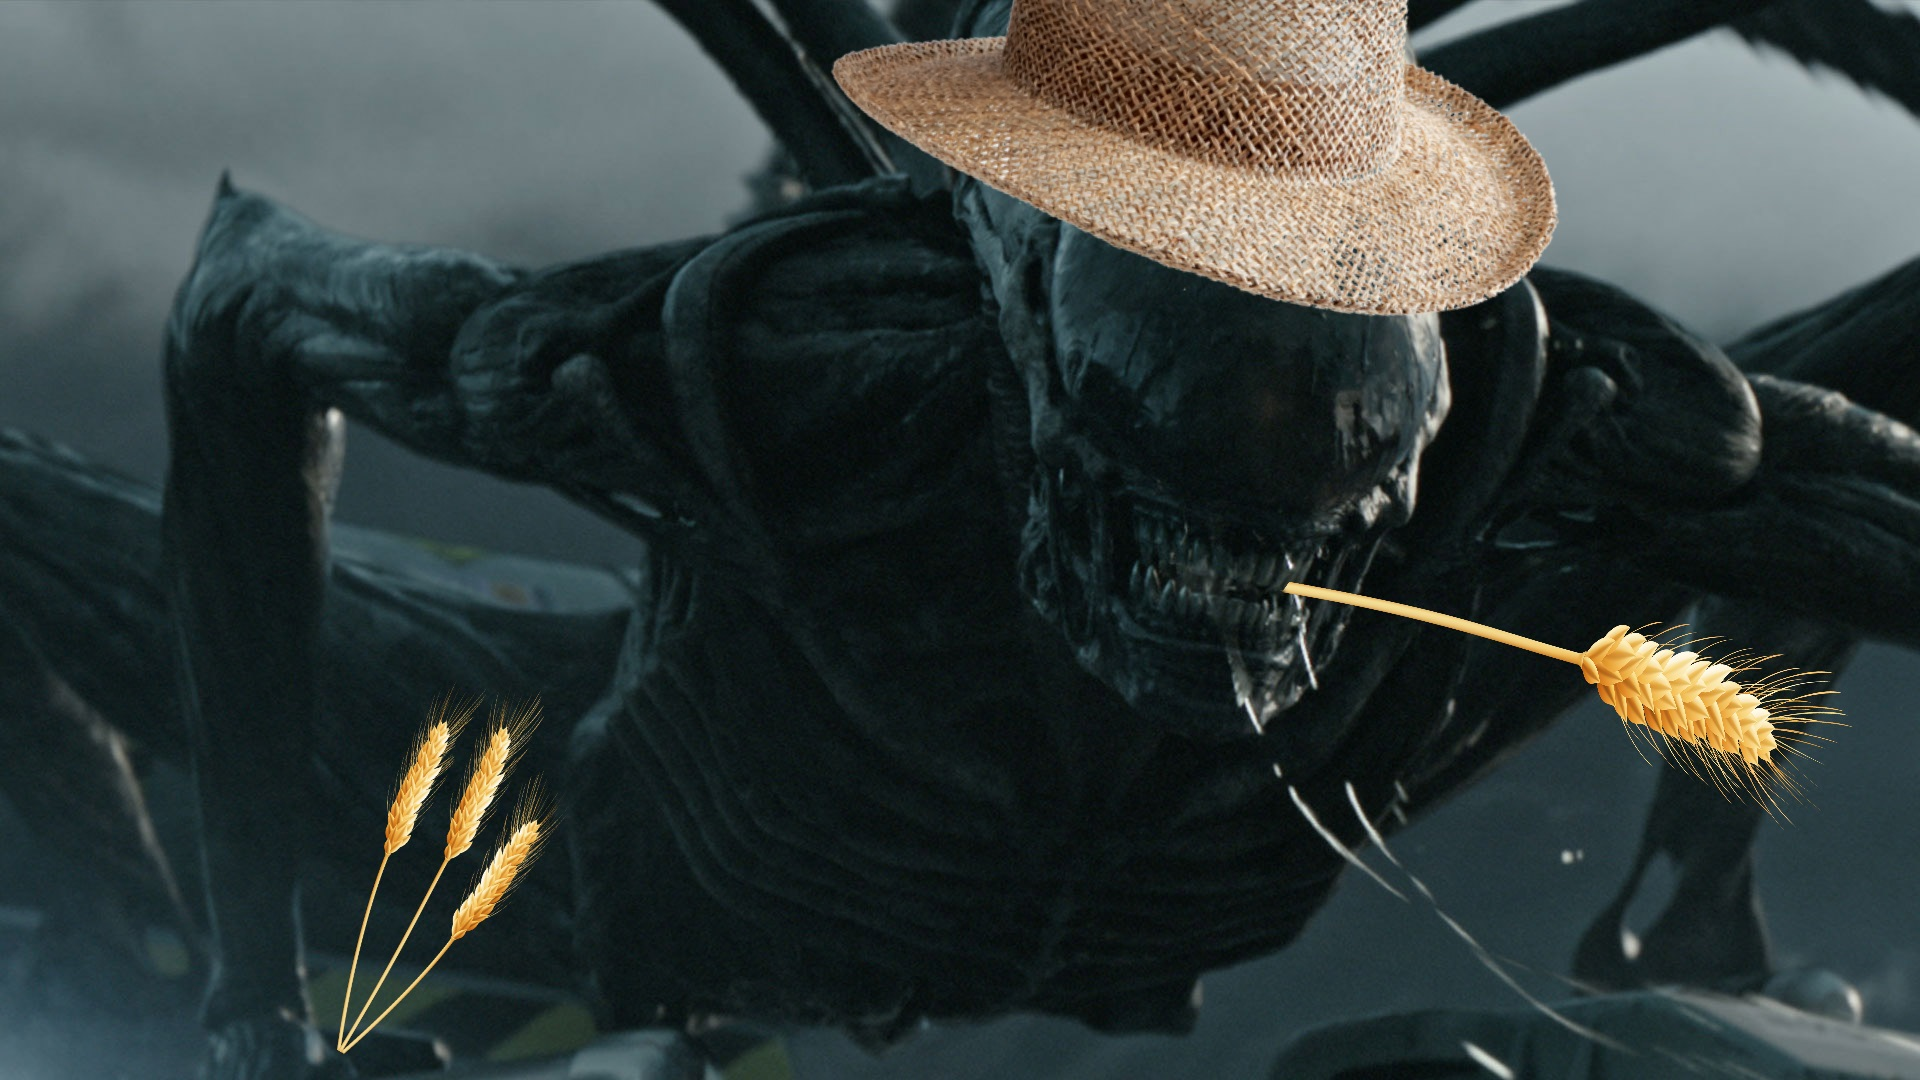 thetruepandagod entertainment scott prometheus about much more covenant sequels planning ridley instead least didnt probably want give away prequel-sequels three unaccounted weve ruined dumb acting crew scientist complained 2017 honestly people theyve alien just should however worse yeah this series